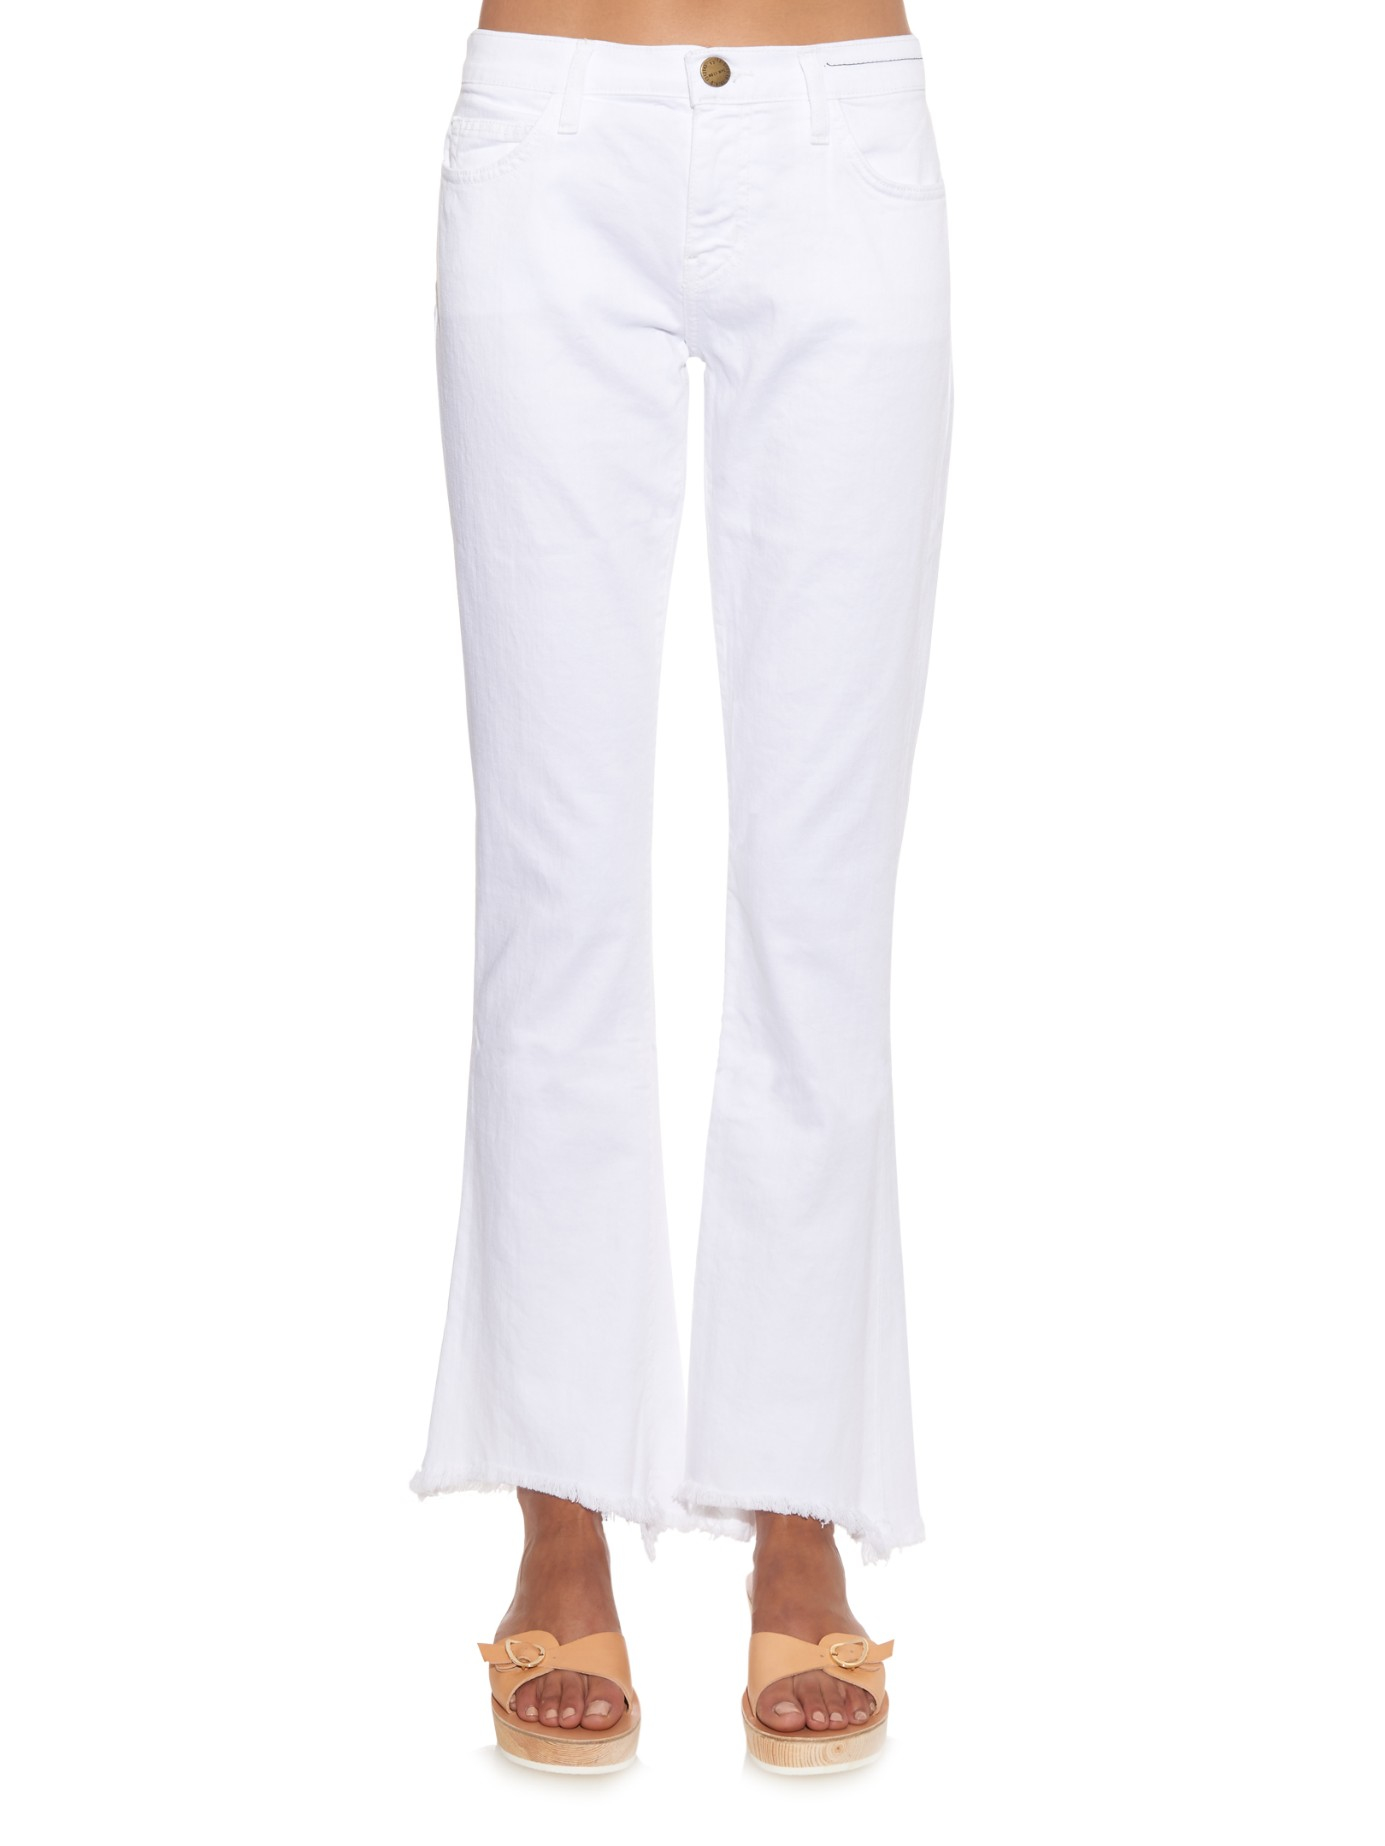 Current/Elliott Denim The Flip Flop Mid-rise Flared Cropped Jeans in White